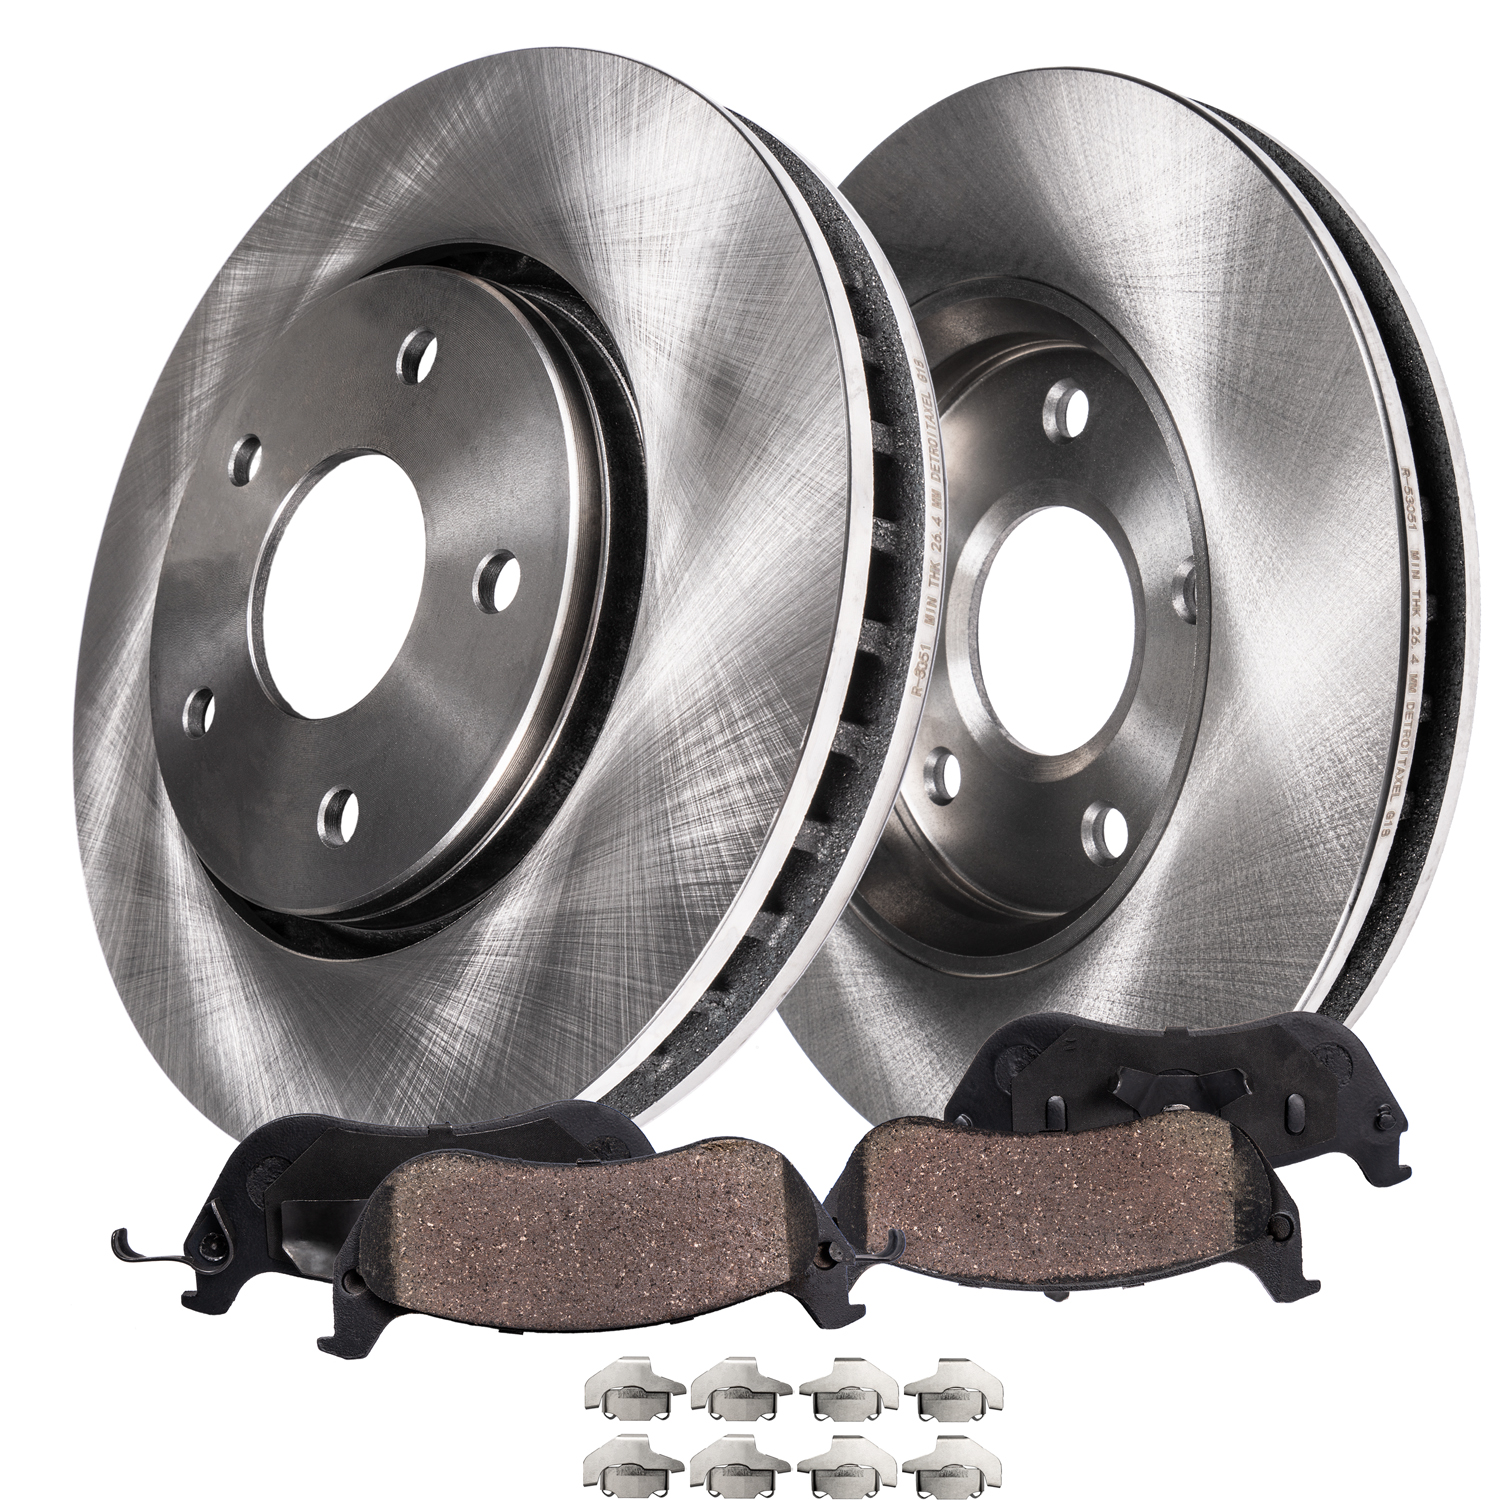 REAR Brake Rotors and Ceramic Brake Pads for 5.7L or AWD ONLY